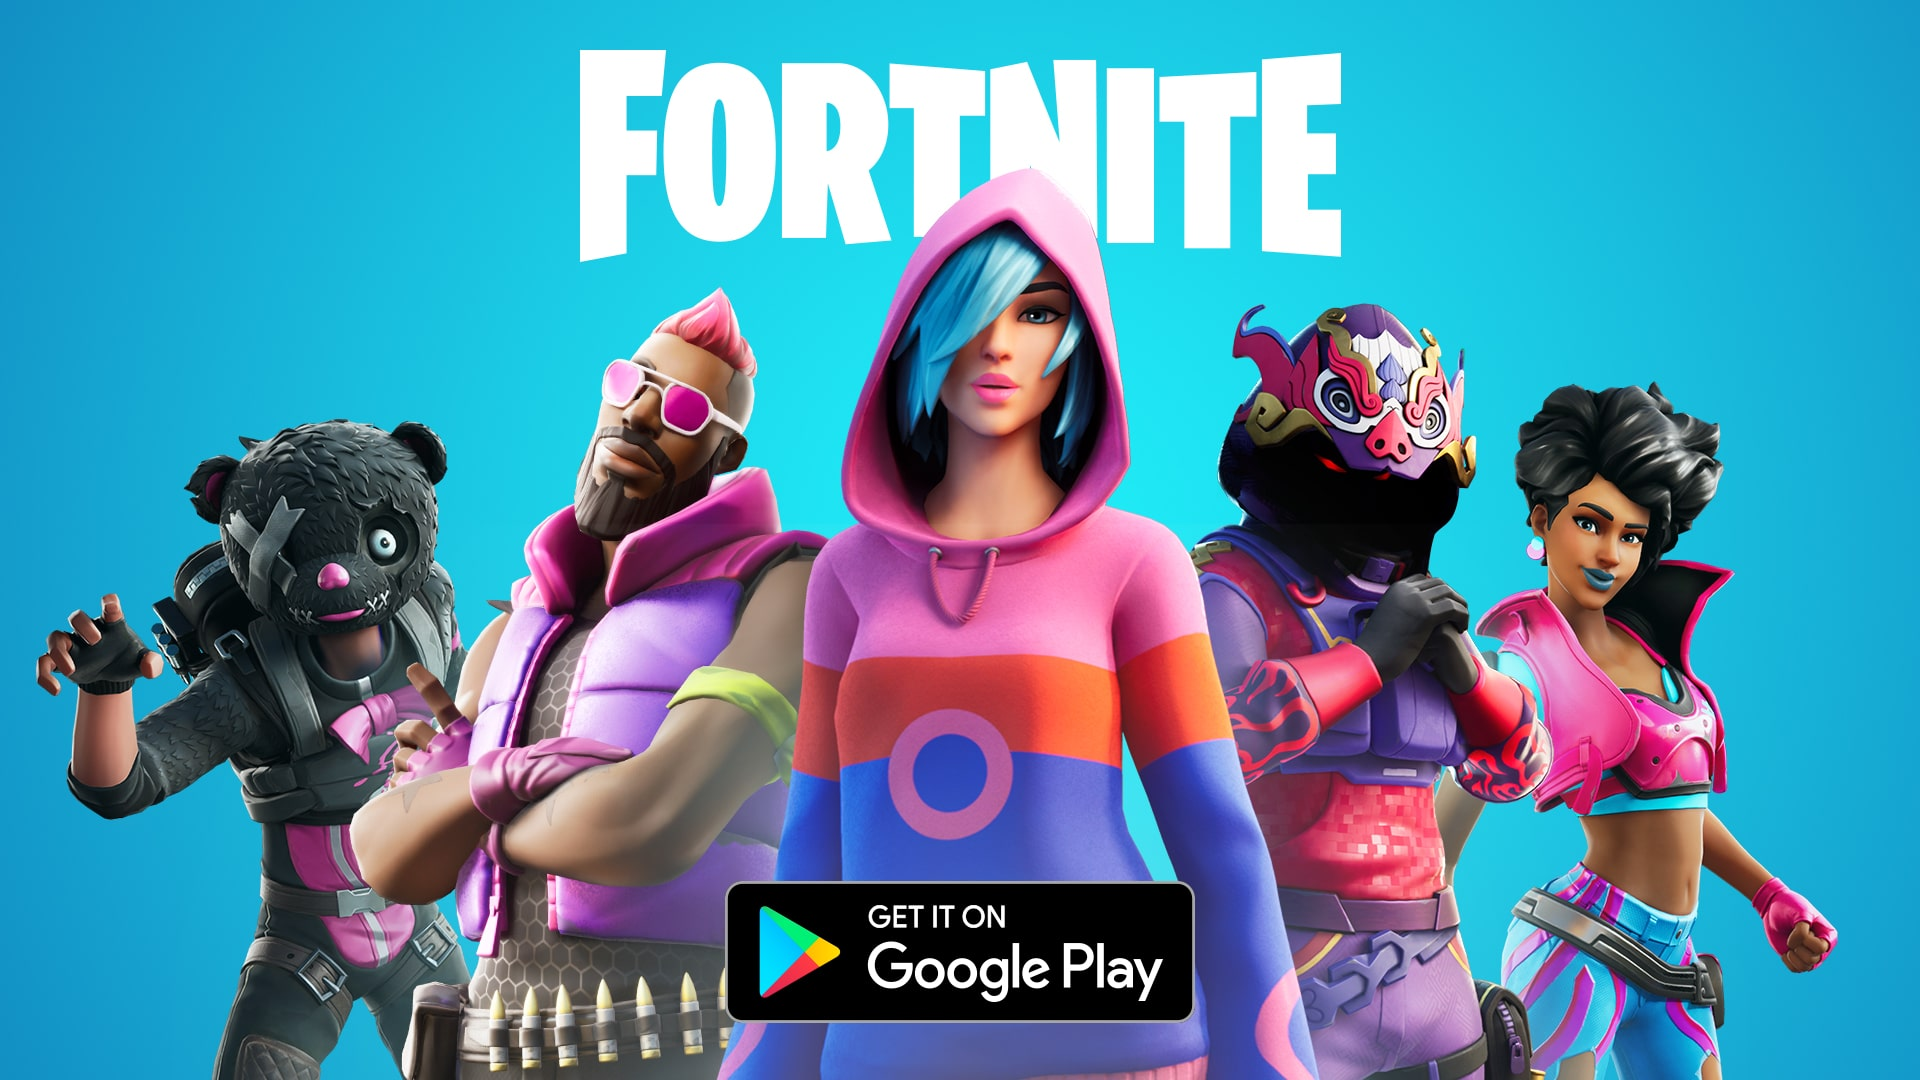 You can now find Fortnite in the Google Play Store